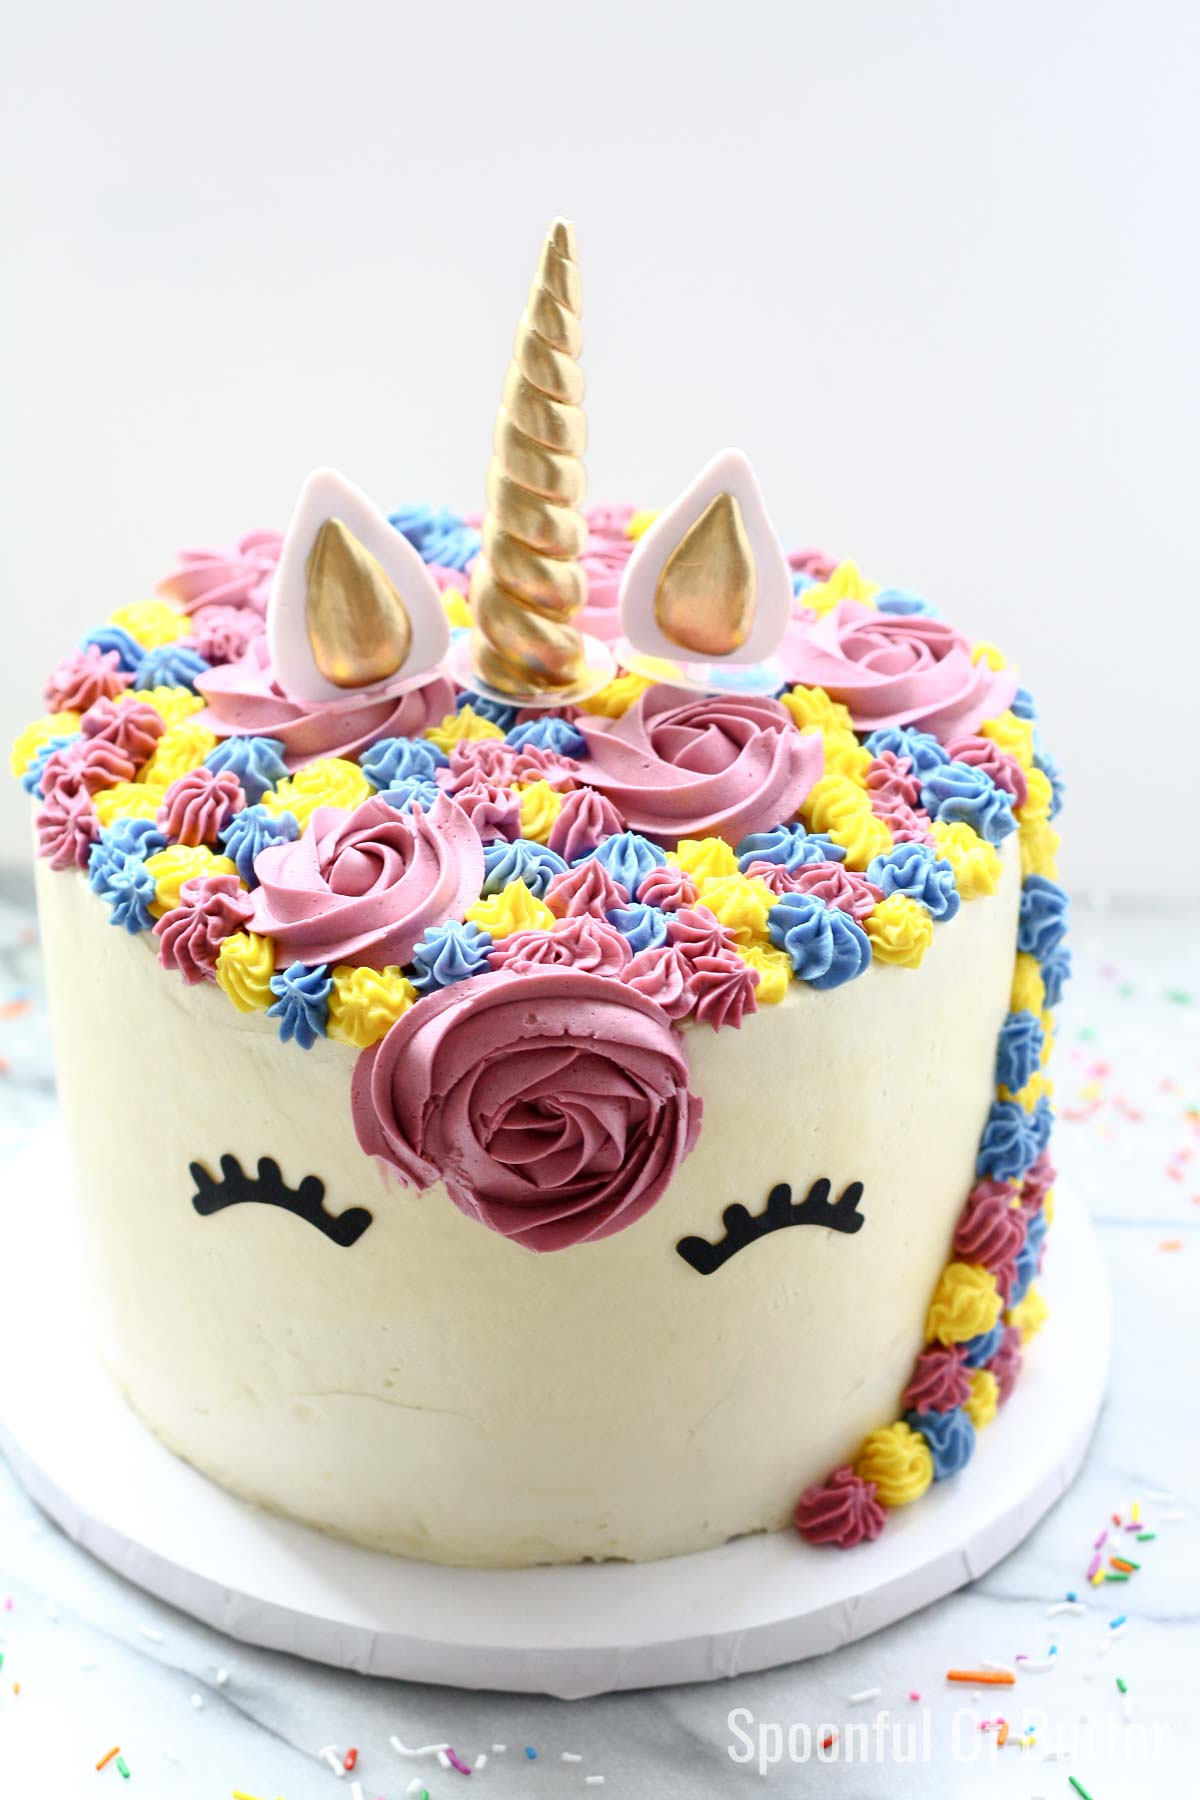 Swell A Unicorn Birthday Cake Spoonful Of Butter Personalised Birthday Cards Paralily Jamesorg